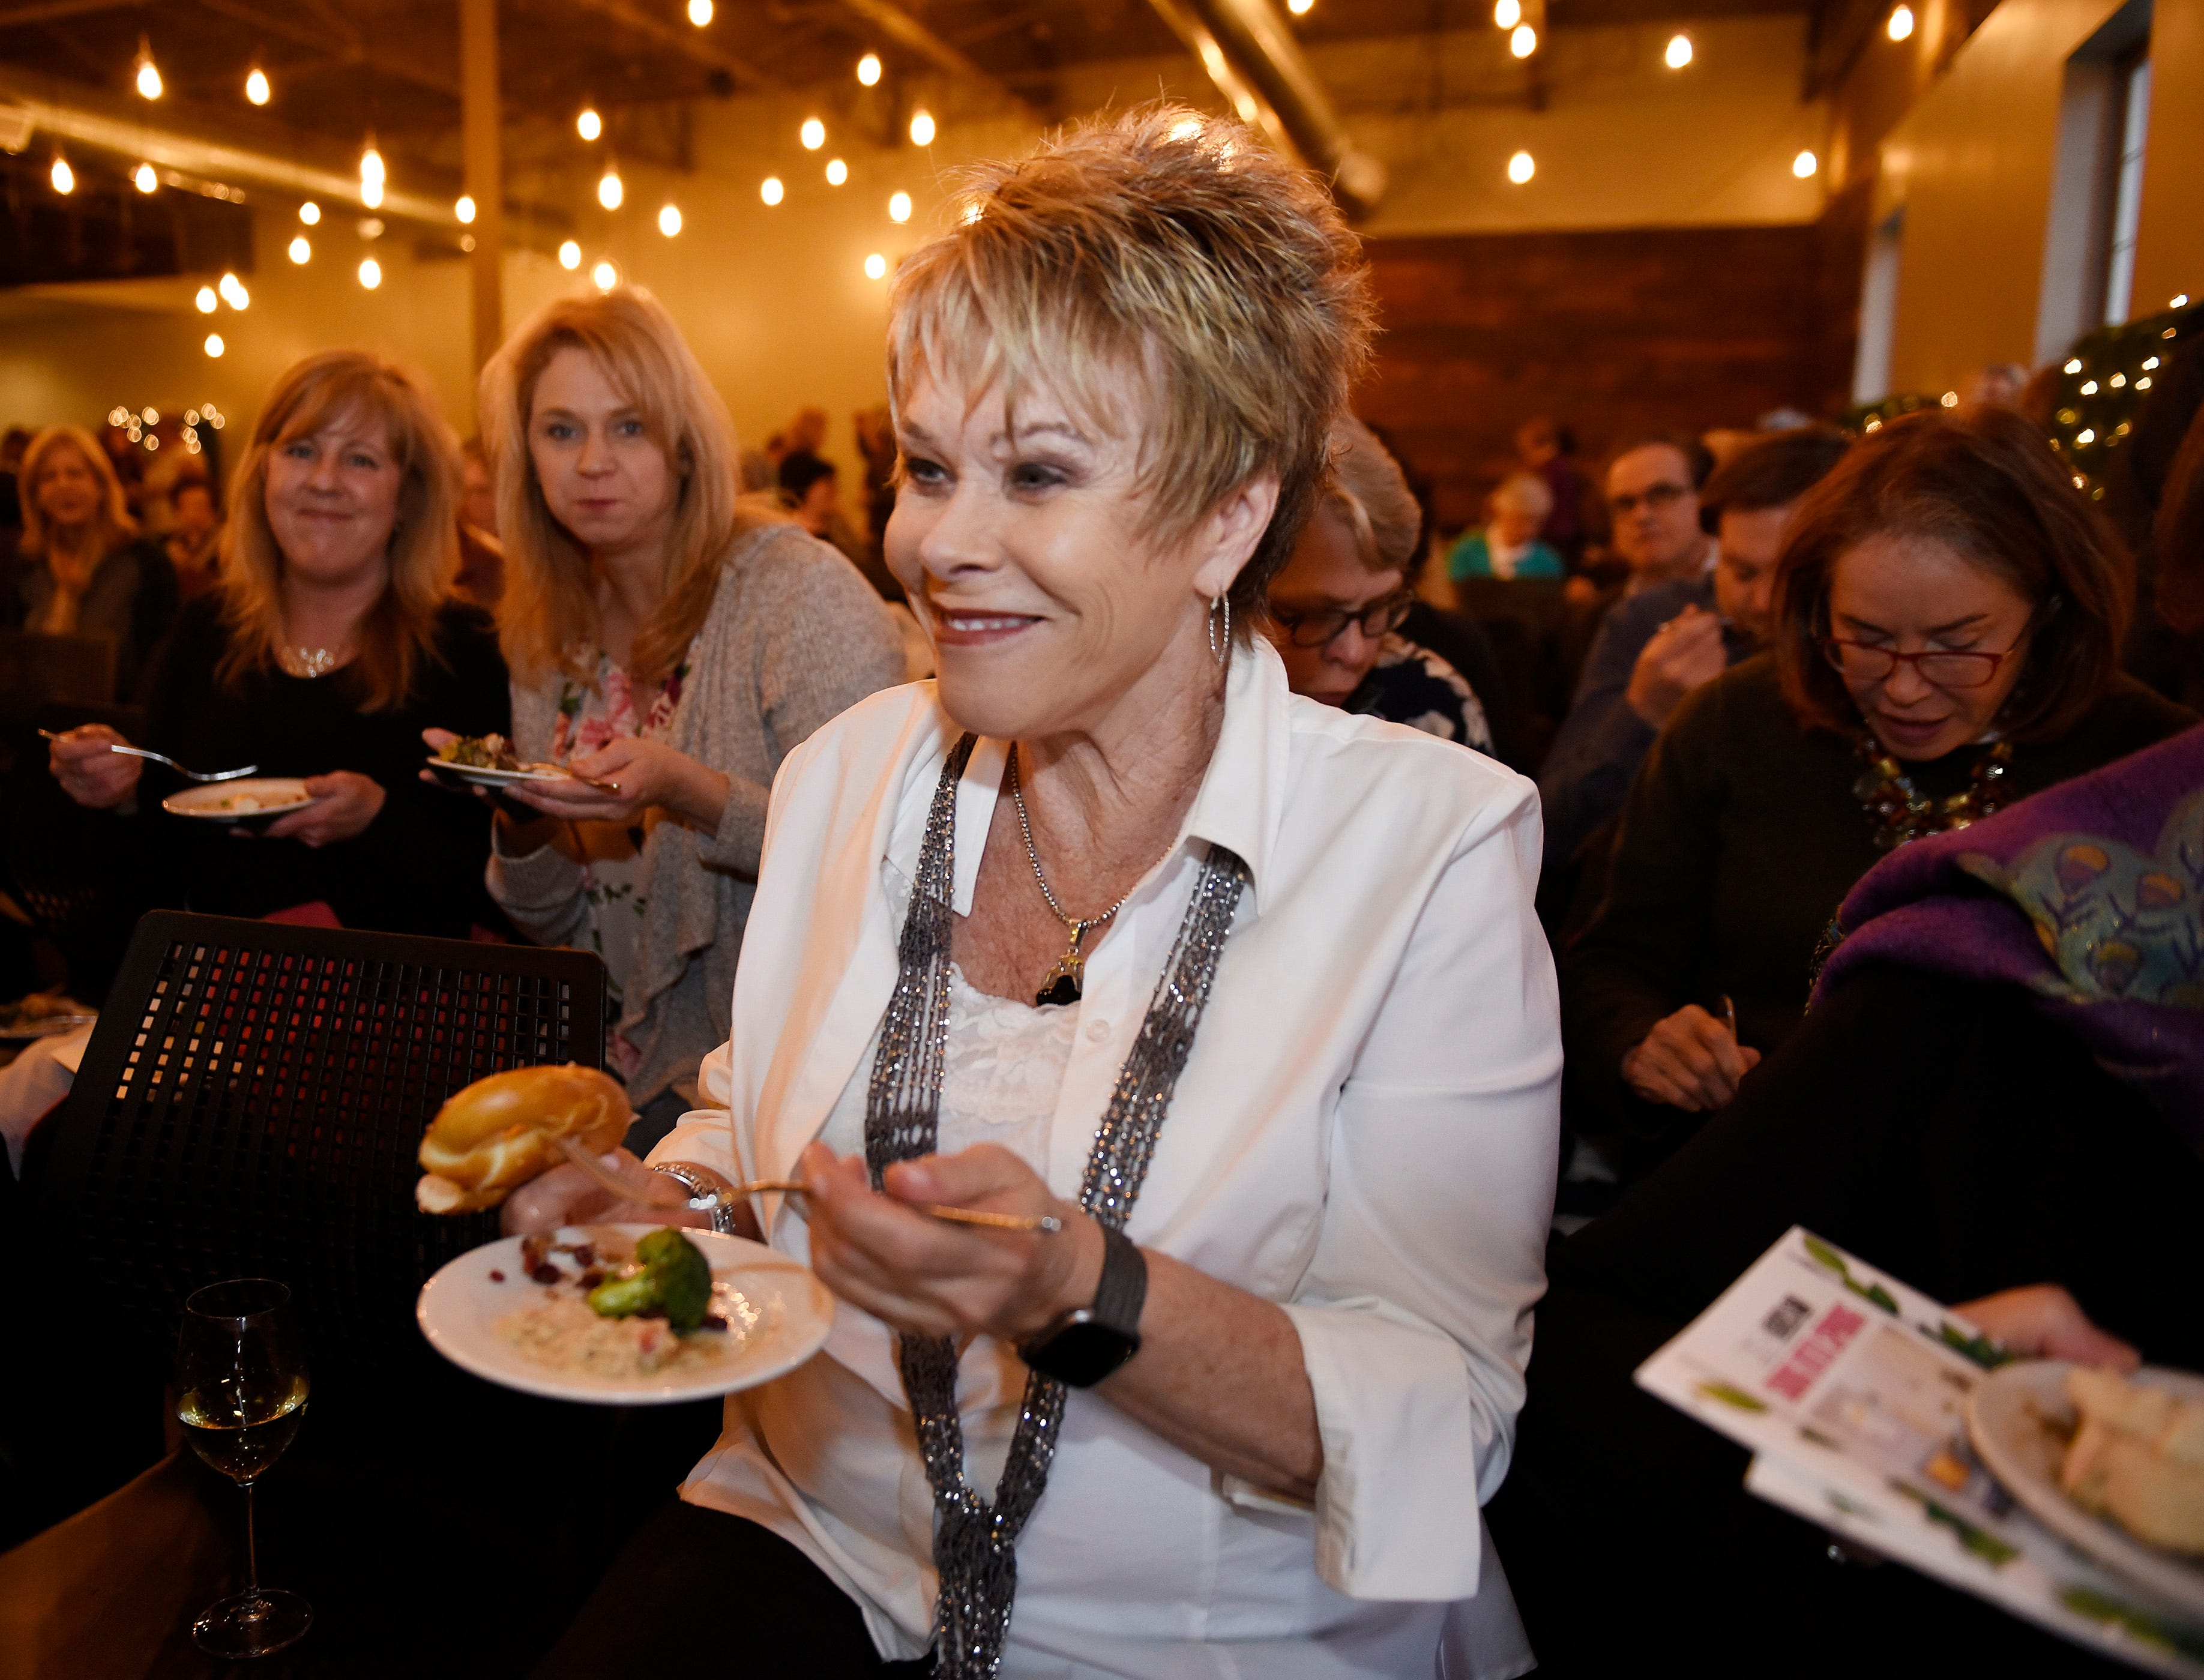 Dianne Weiss of Farmington Hills, taste a sample of food before the start of the event.